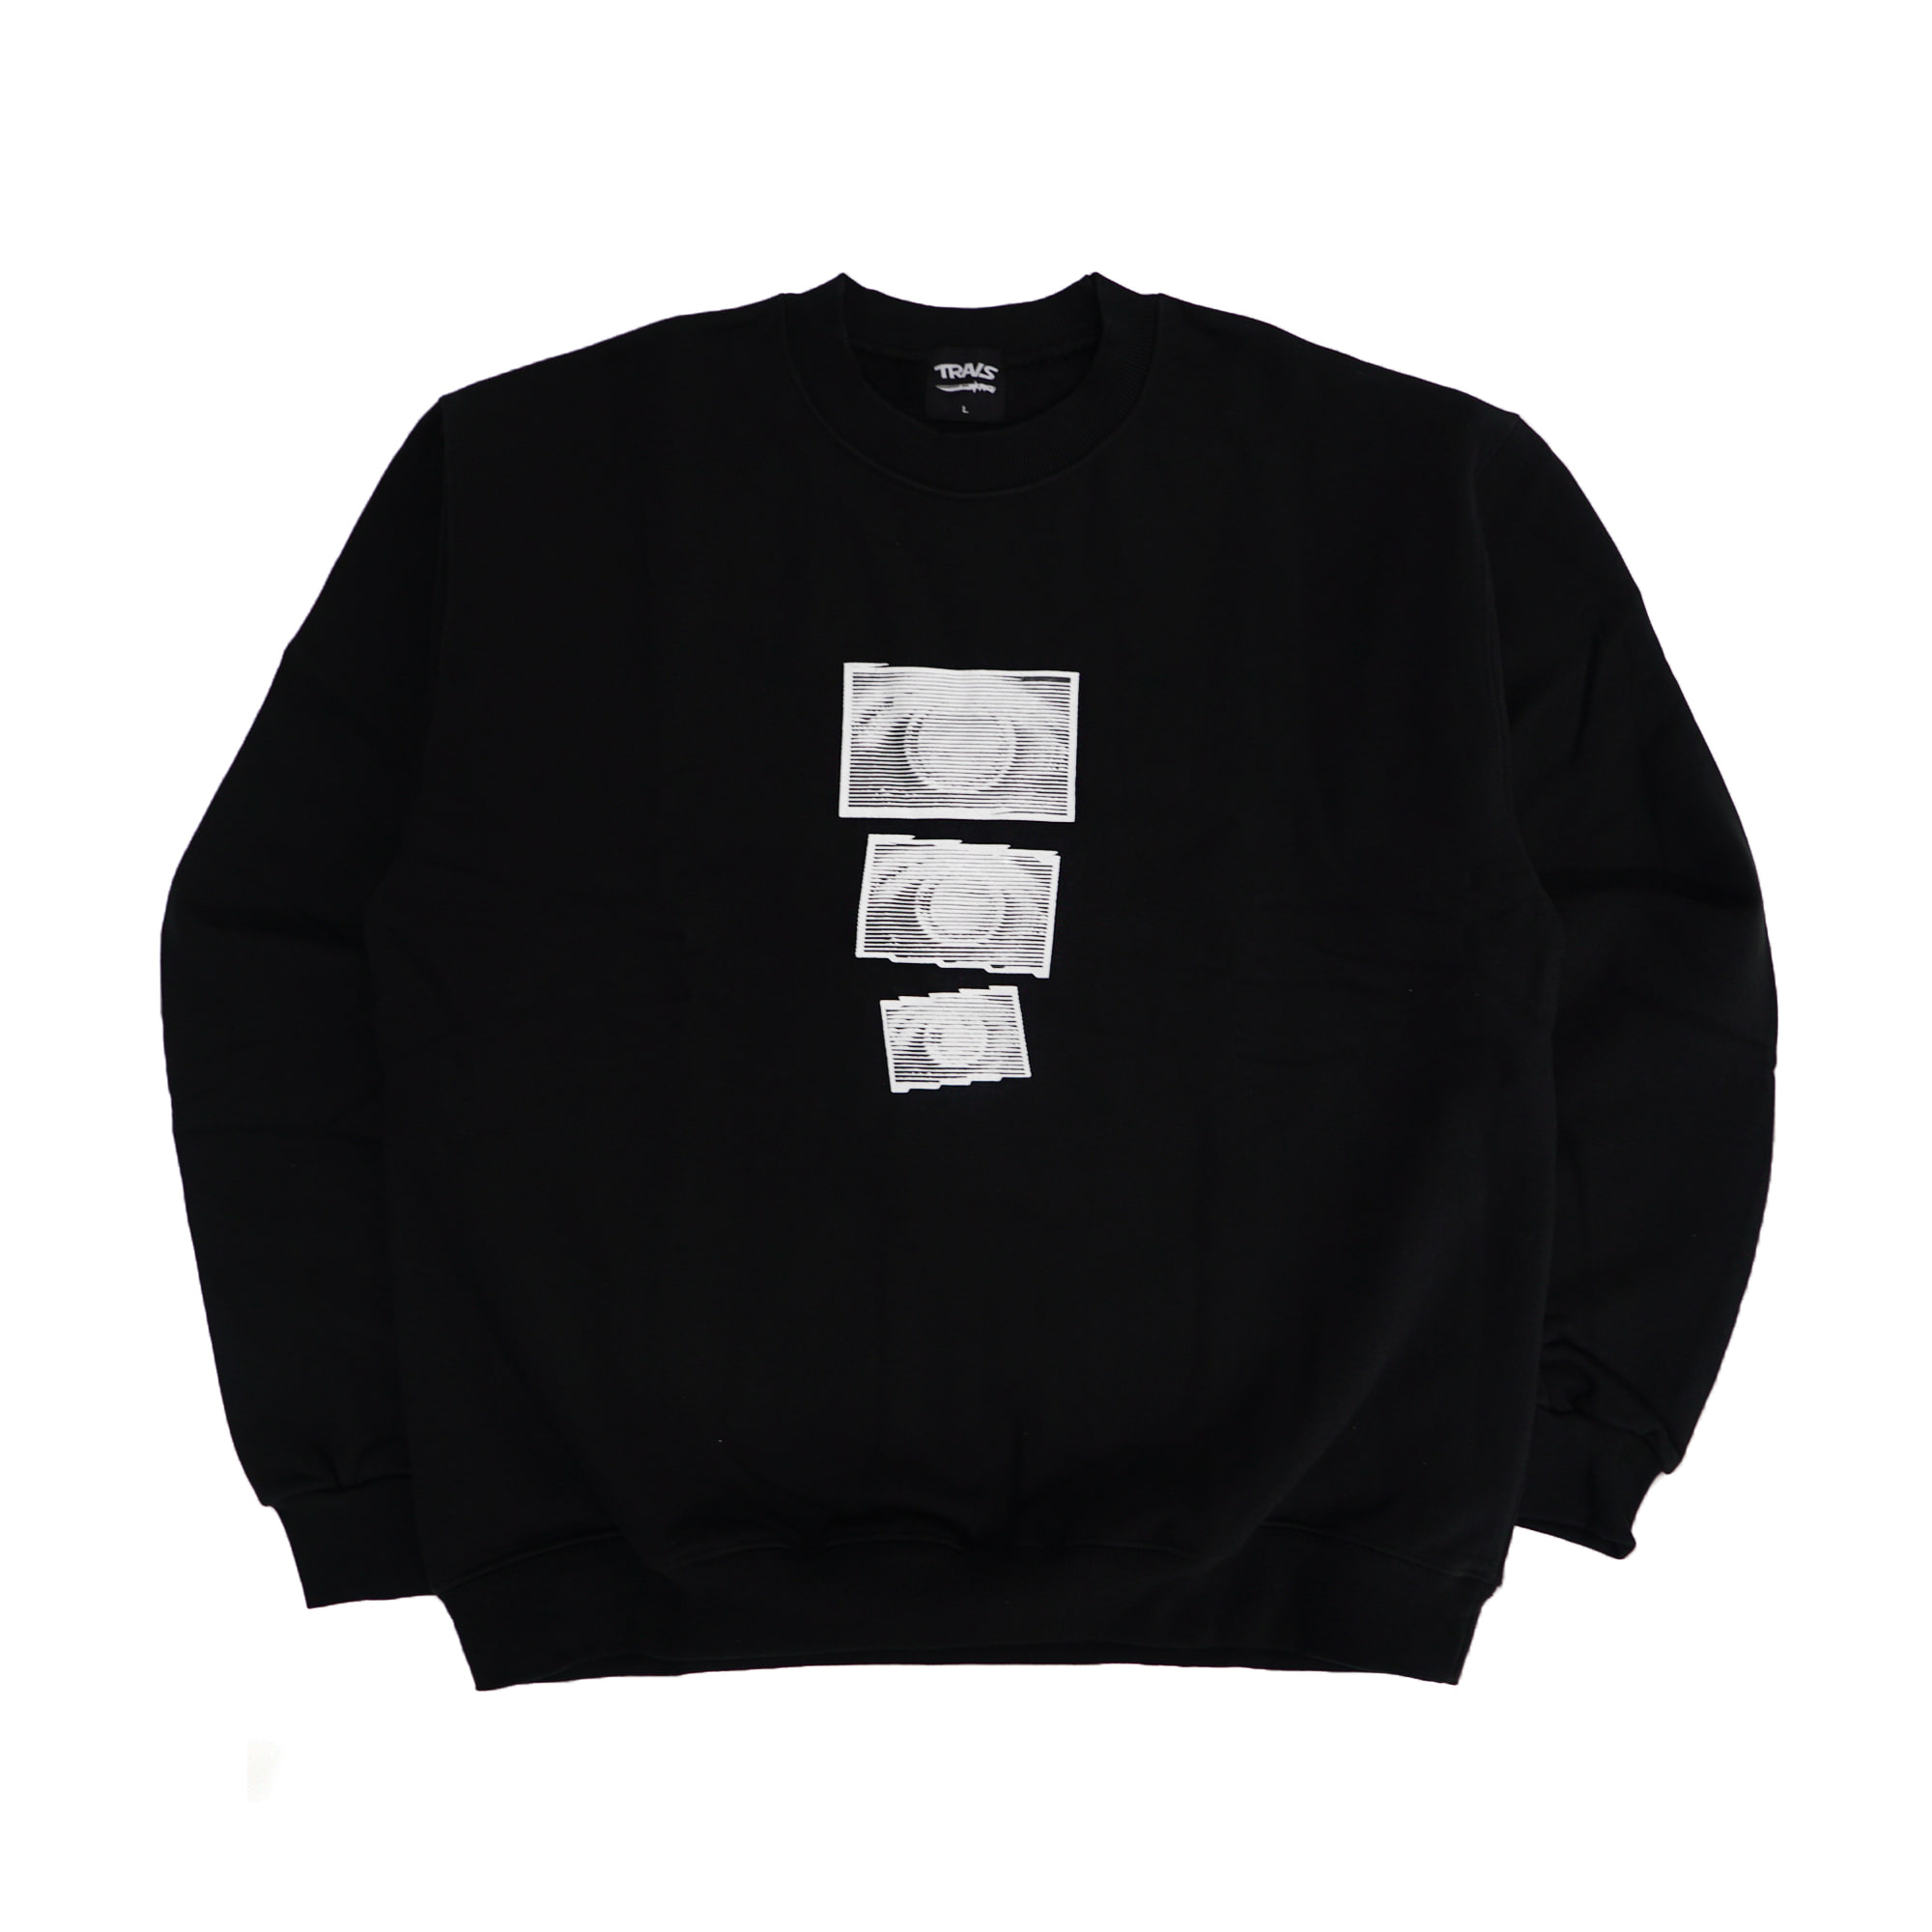 [TRAVS] TRAVS EYES CREWNECK SWEATSHIRTS - BLACK